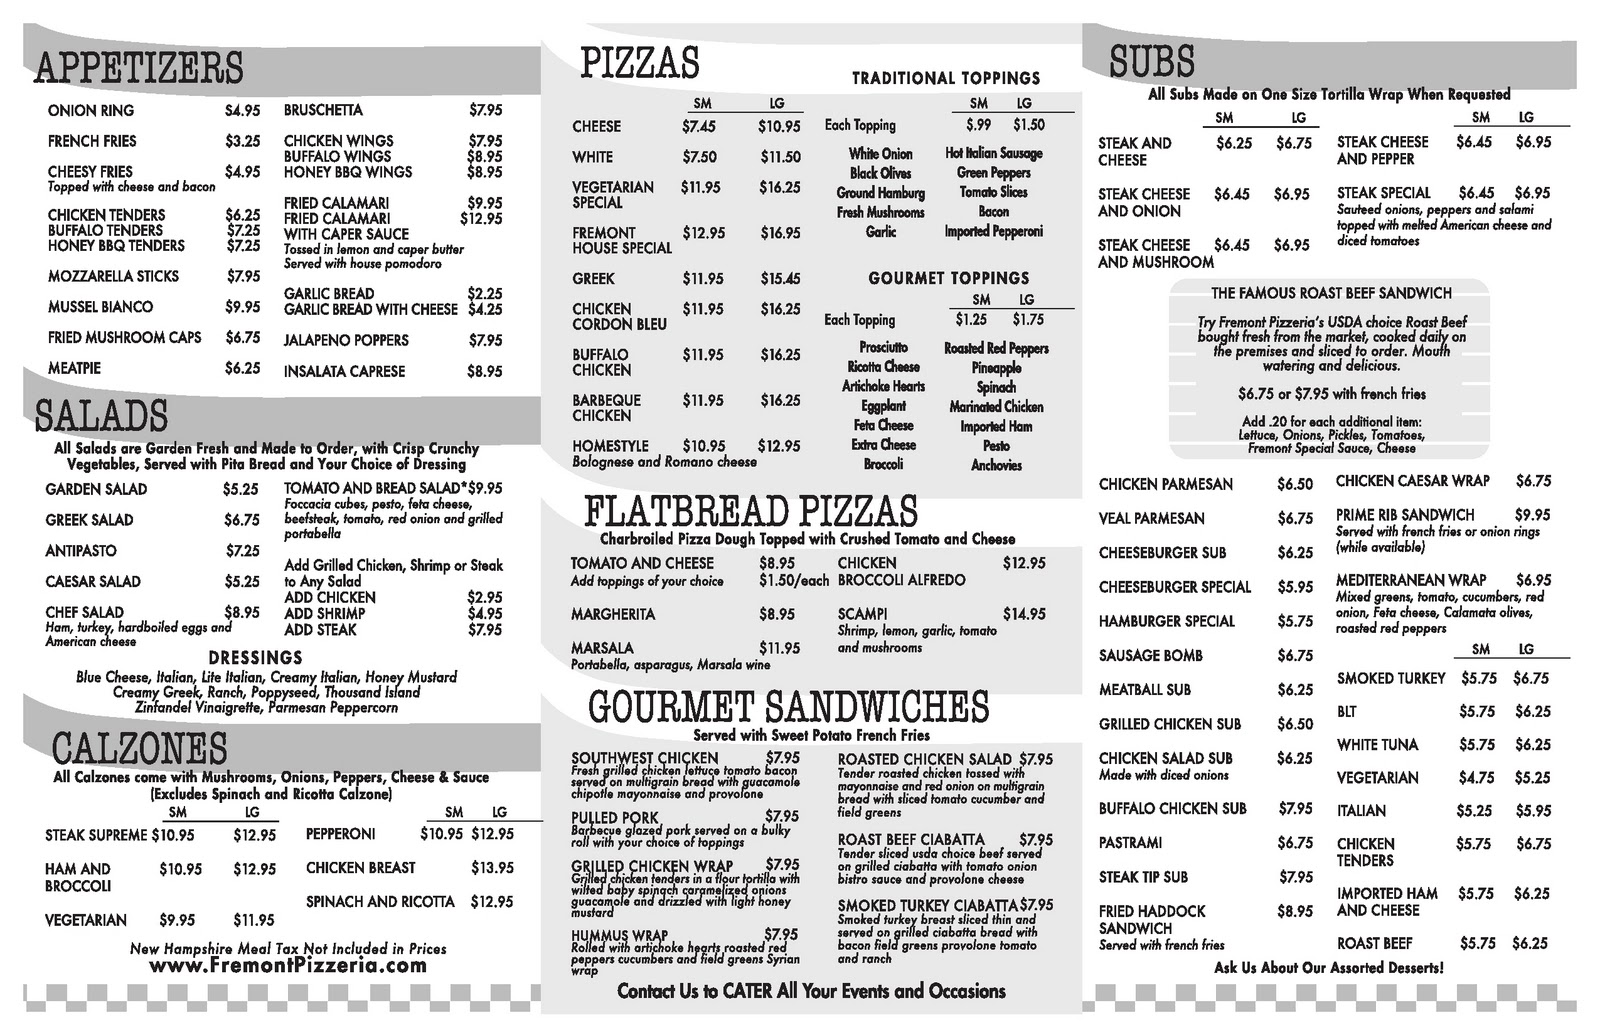 Fremont Pizzeria Restaurant Pizza Catering Family Dining Located